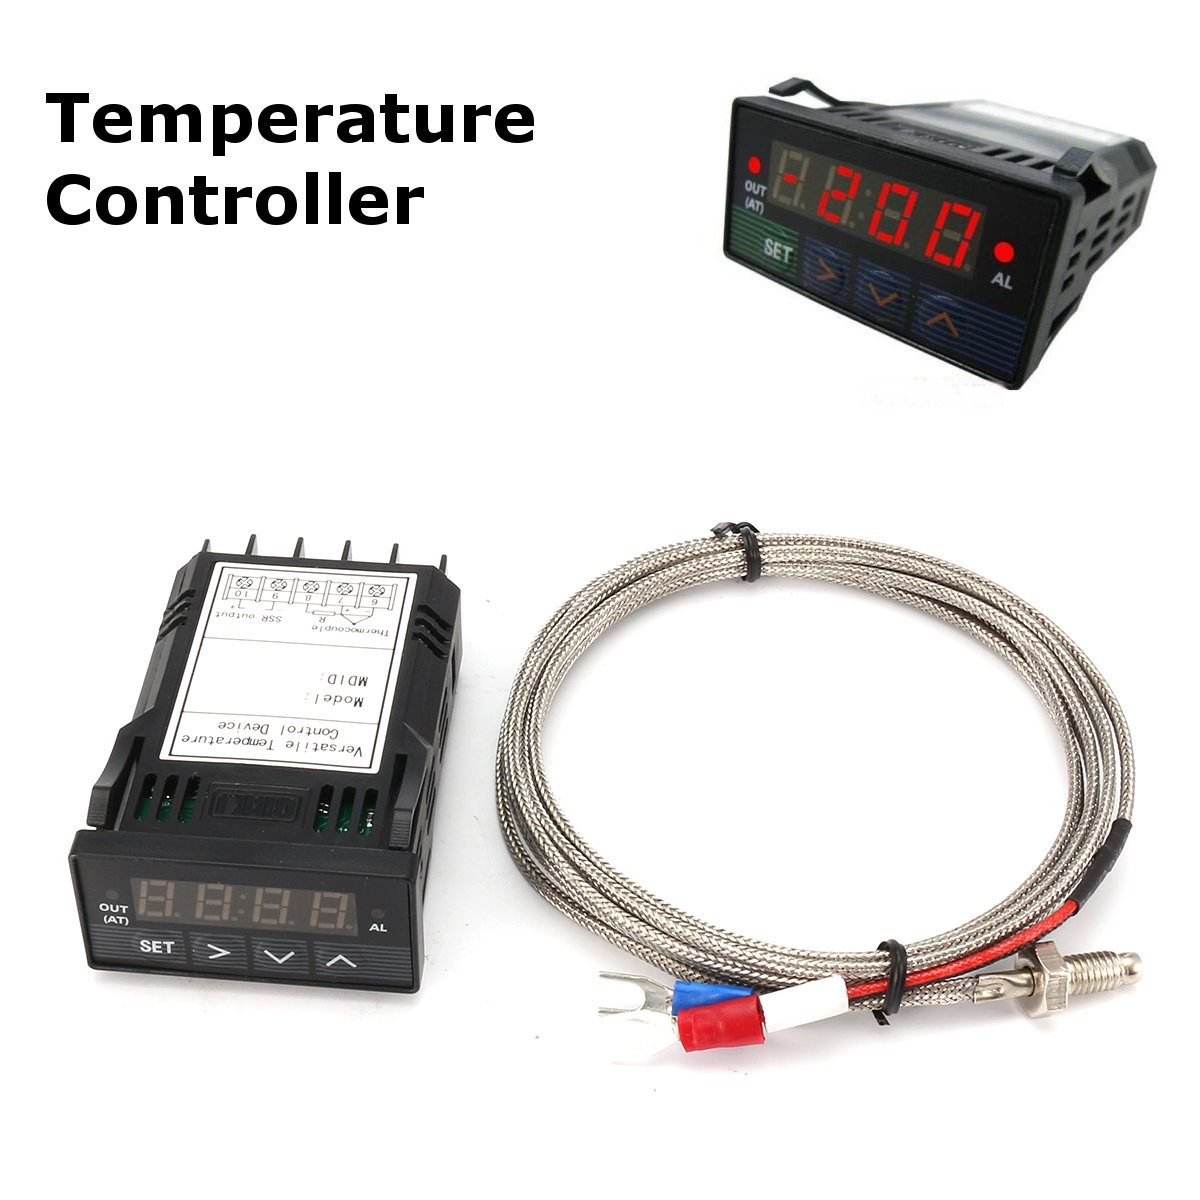 XMT7100 Digital PID Temperature Control Controller with K Type Thermocouple